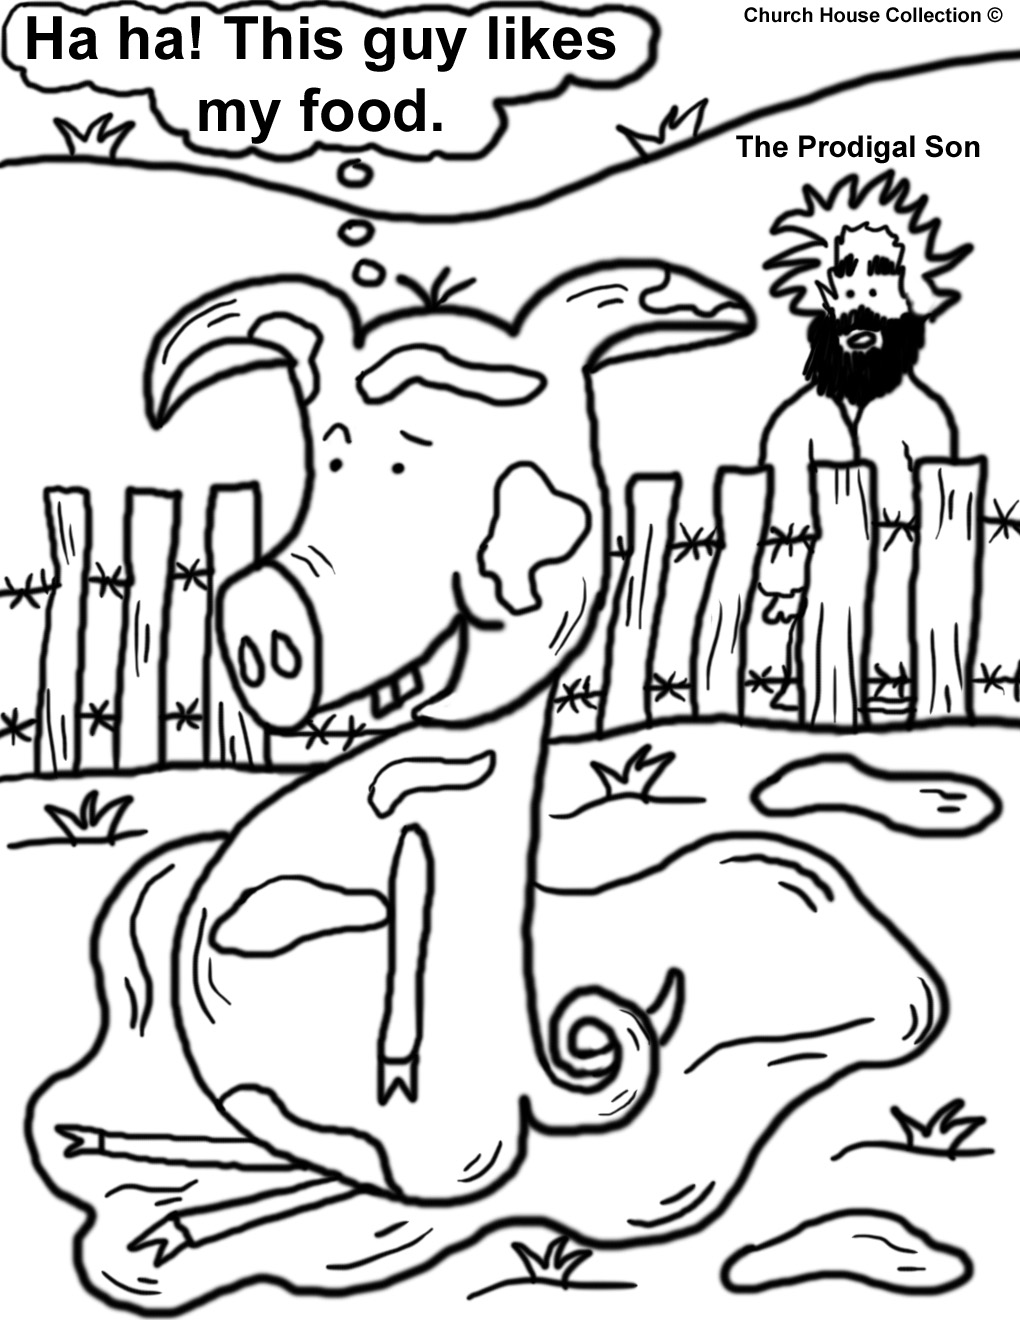 The Prodgial Son Coloring Page